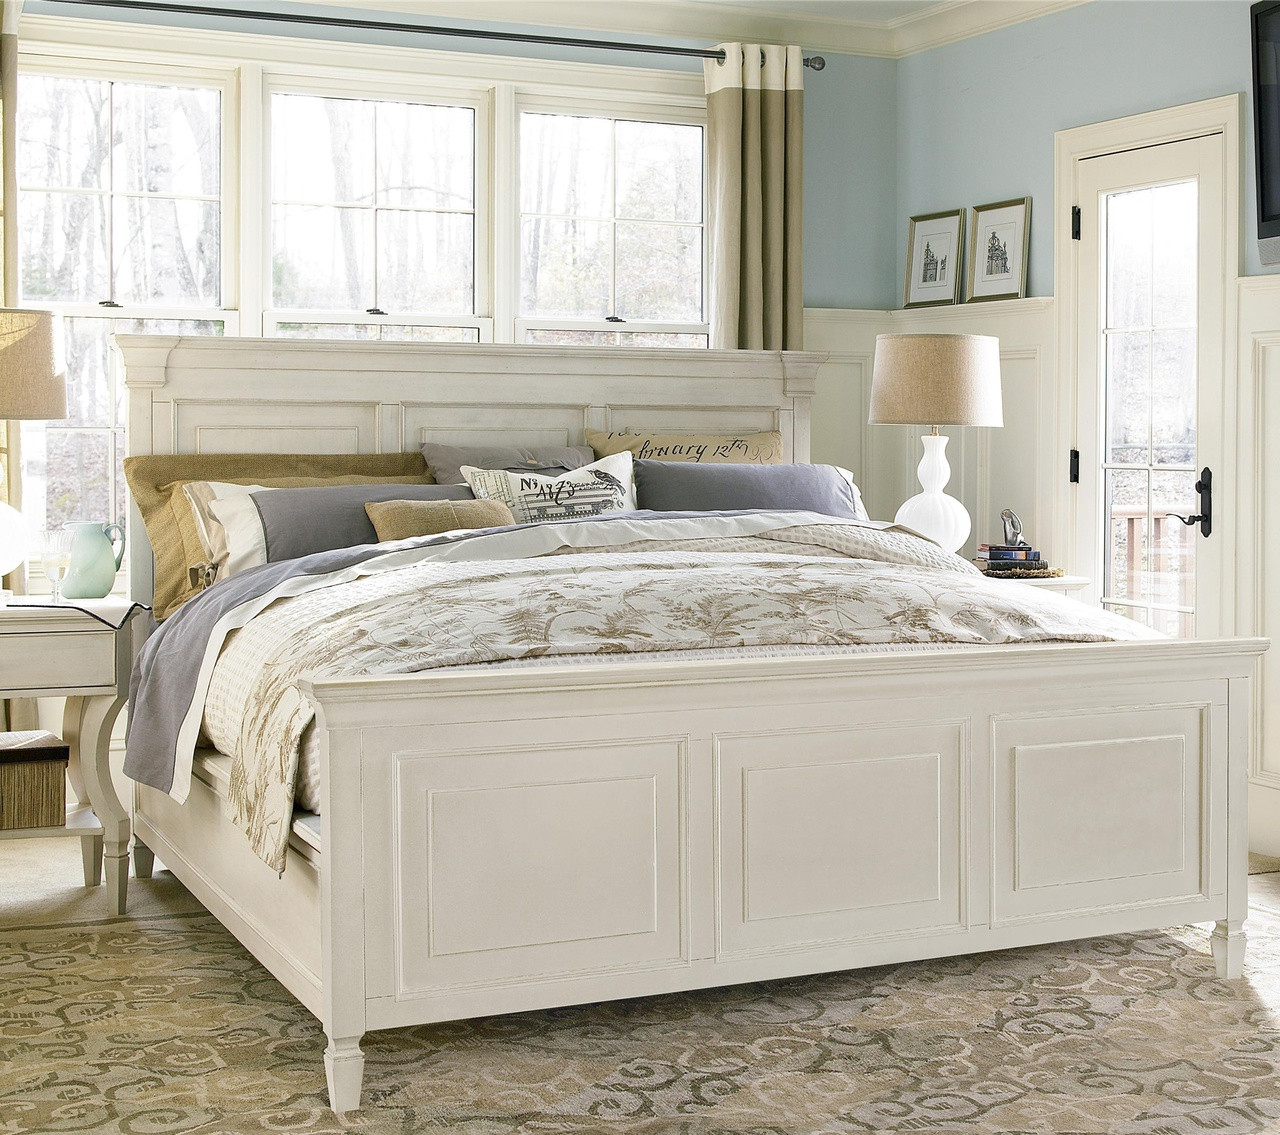 Inspiring White Bed Frame Plans Free